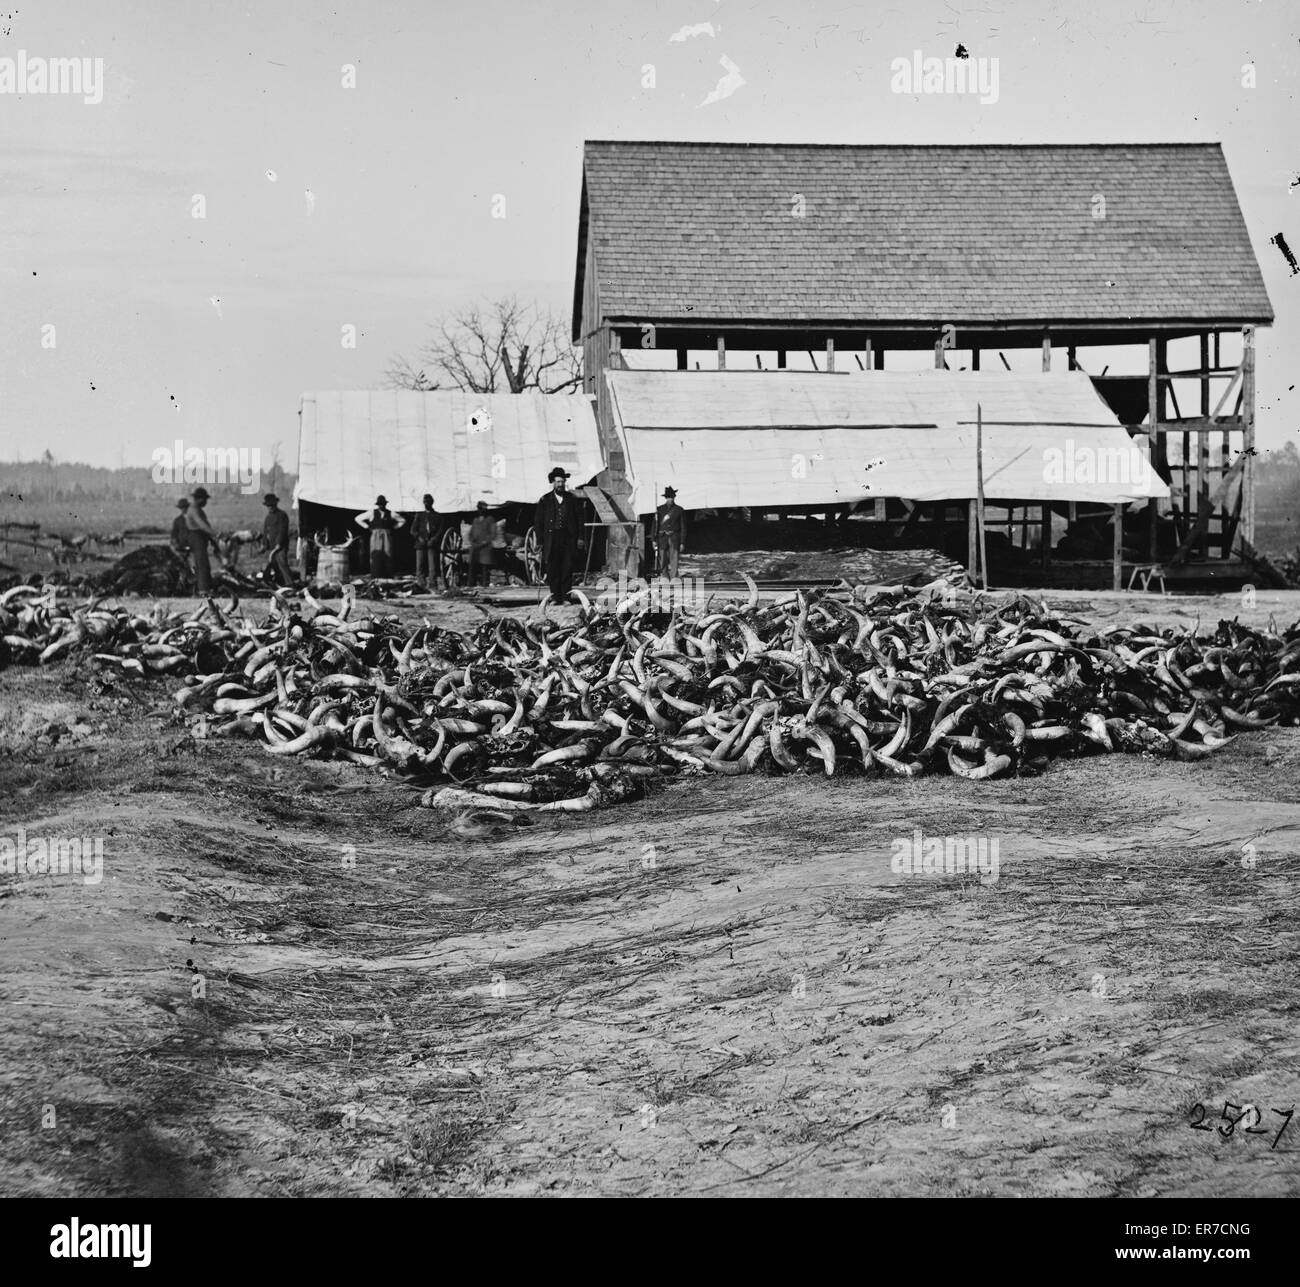 City Point, Virginia. Slaughter house. Date between 1861 and 1869. - Stock Image